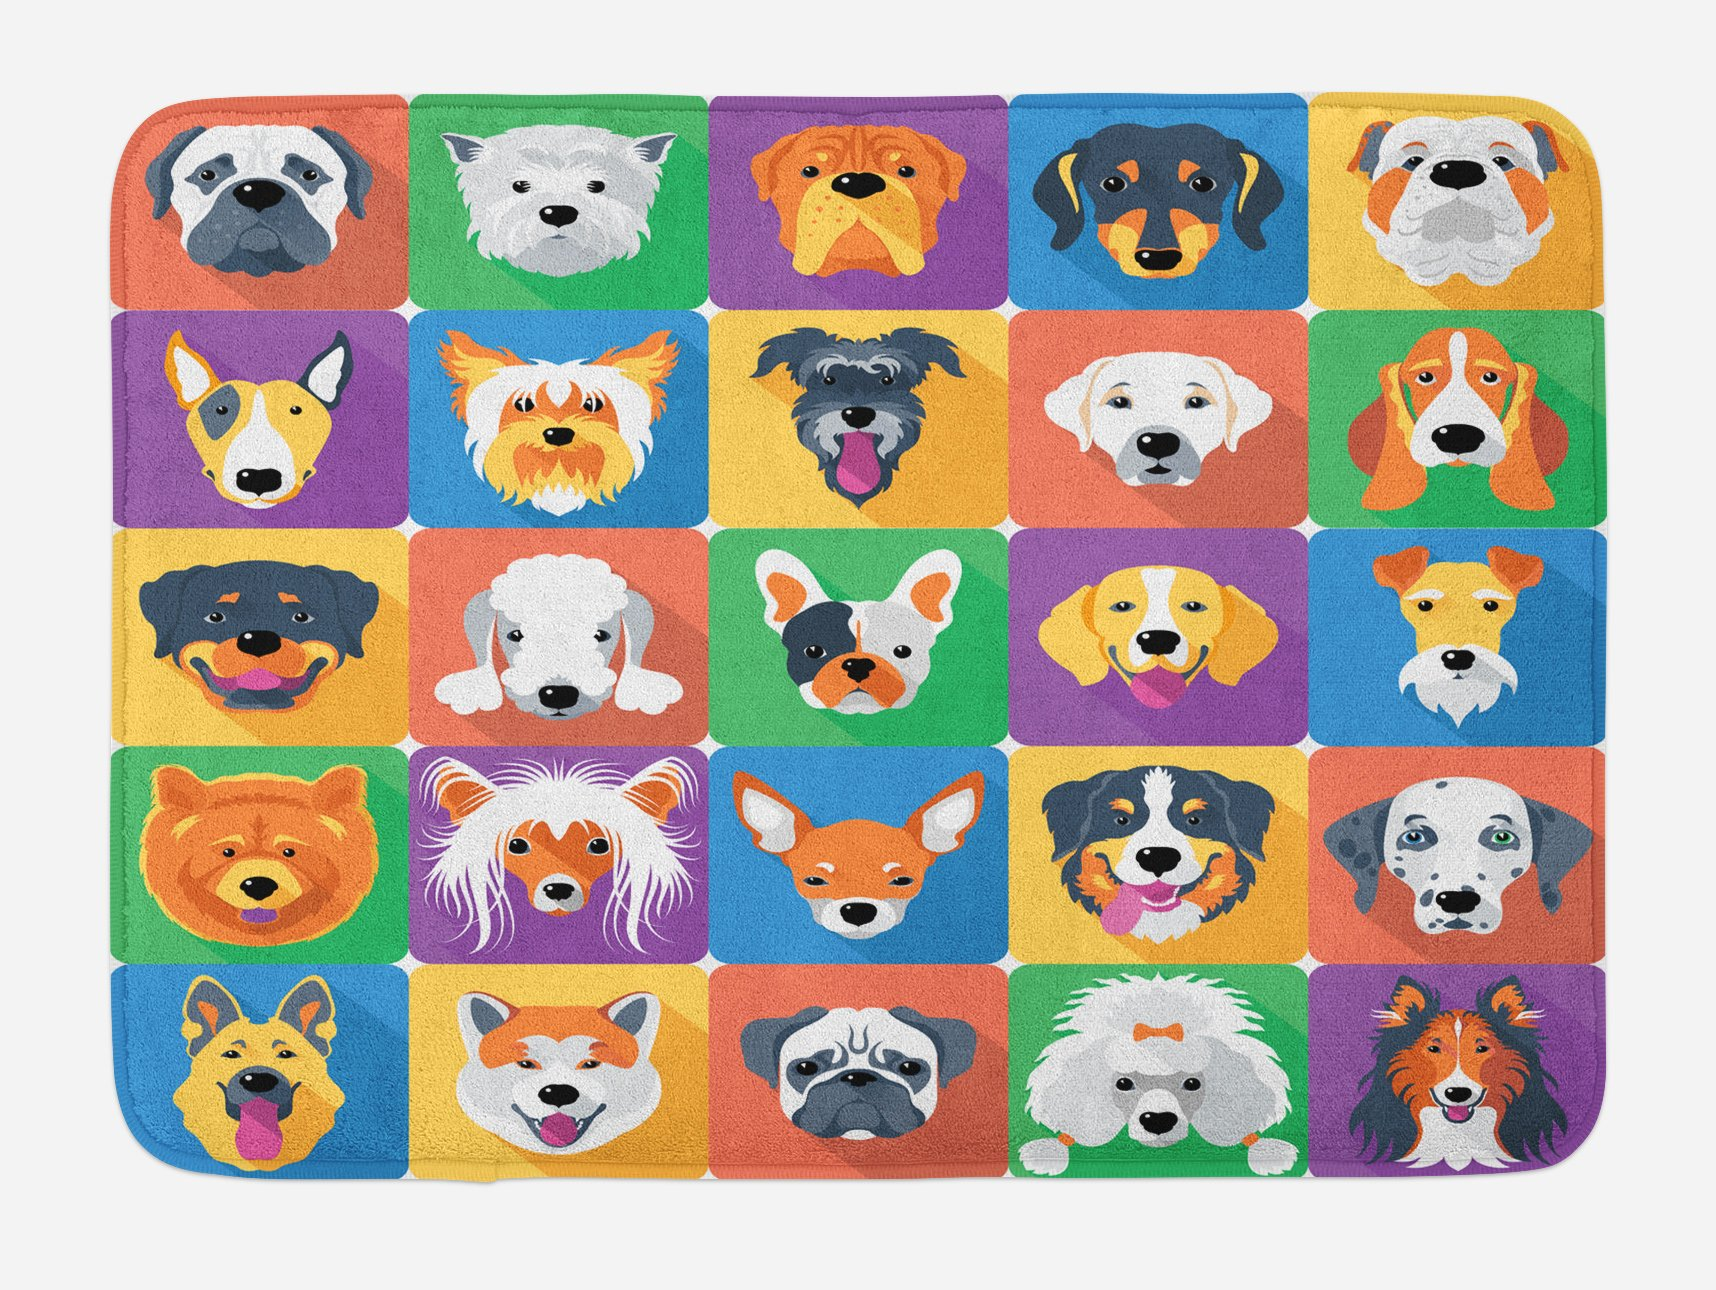 Ambesonne Dog Bath Mat, Dog Breeds Profiles Pets Shepherd Terrier Labrador Domestic Animals Illustration, Plush Bathroom Decor Mat with Non Slip Backing, 29.5 W X 17.5 W Inches, Purple Green